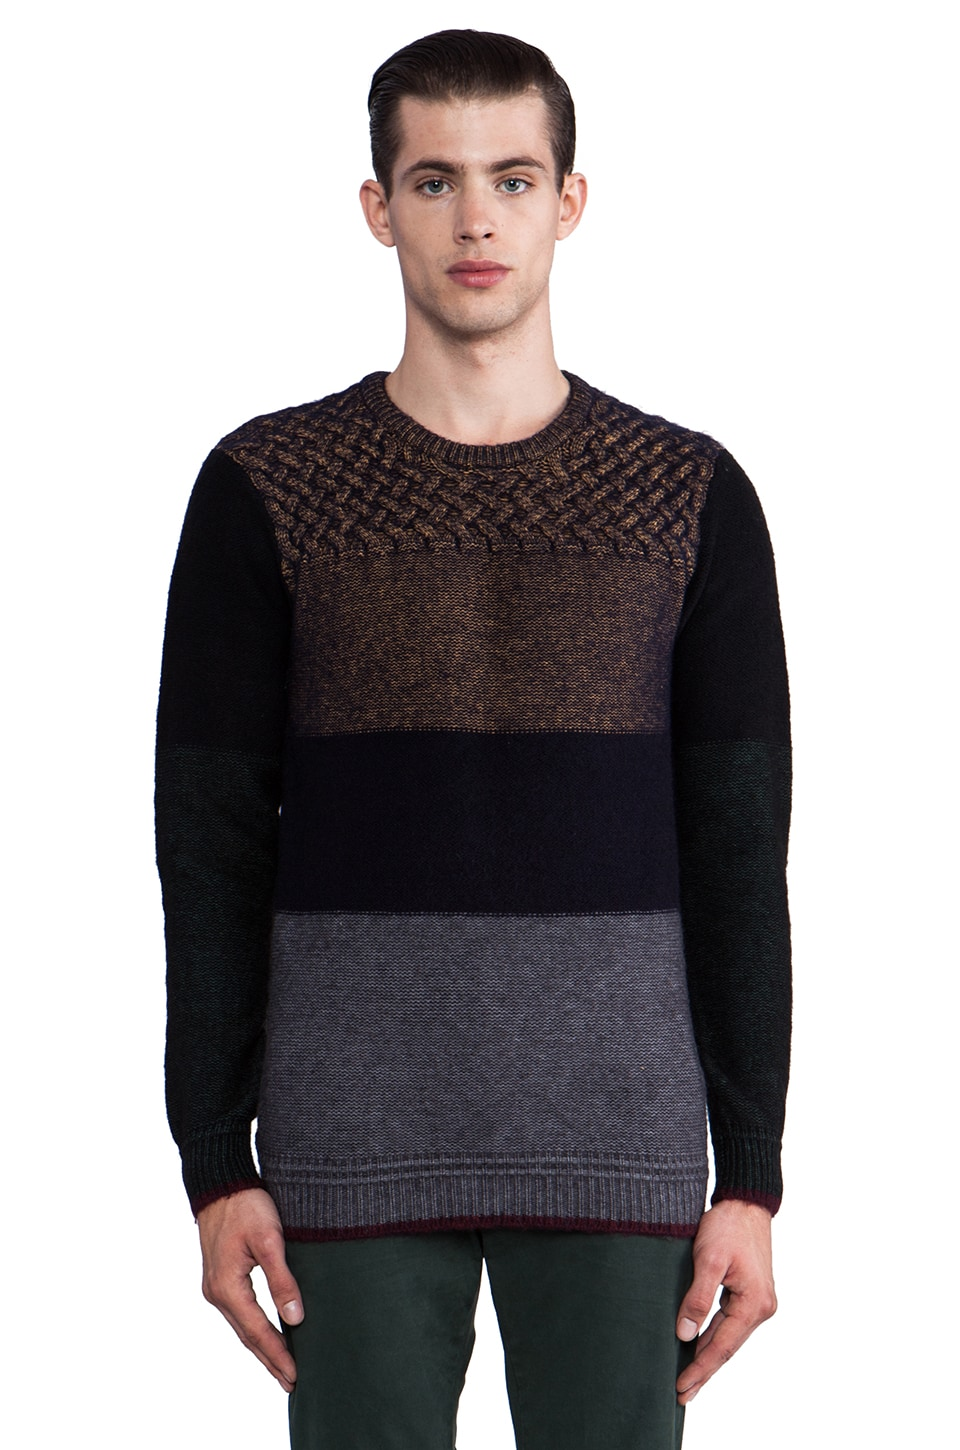 Scotch & Soda Colorblock Sweater in Grey/Multi